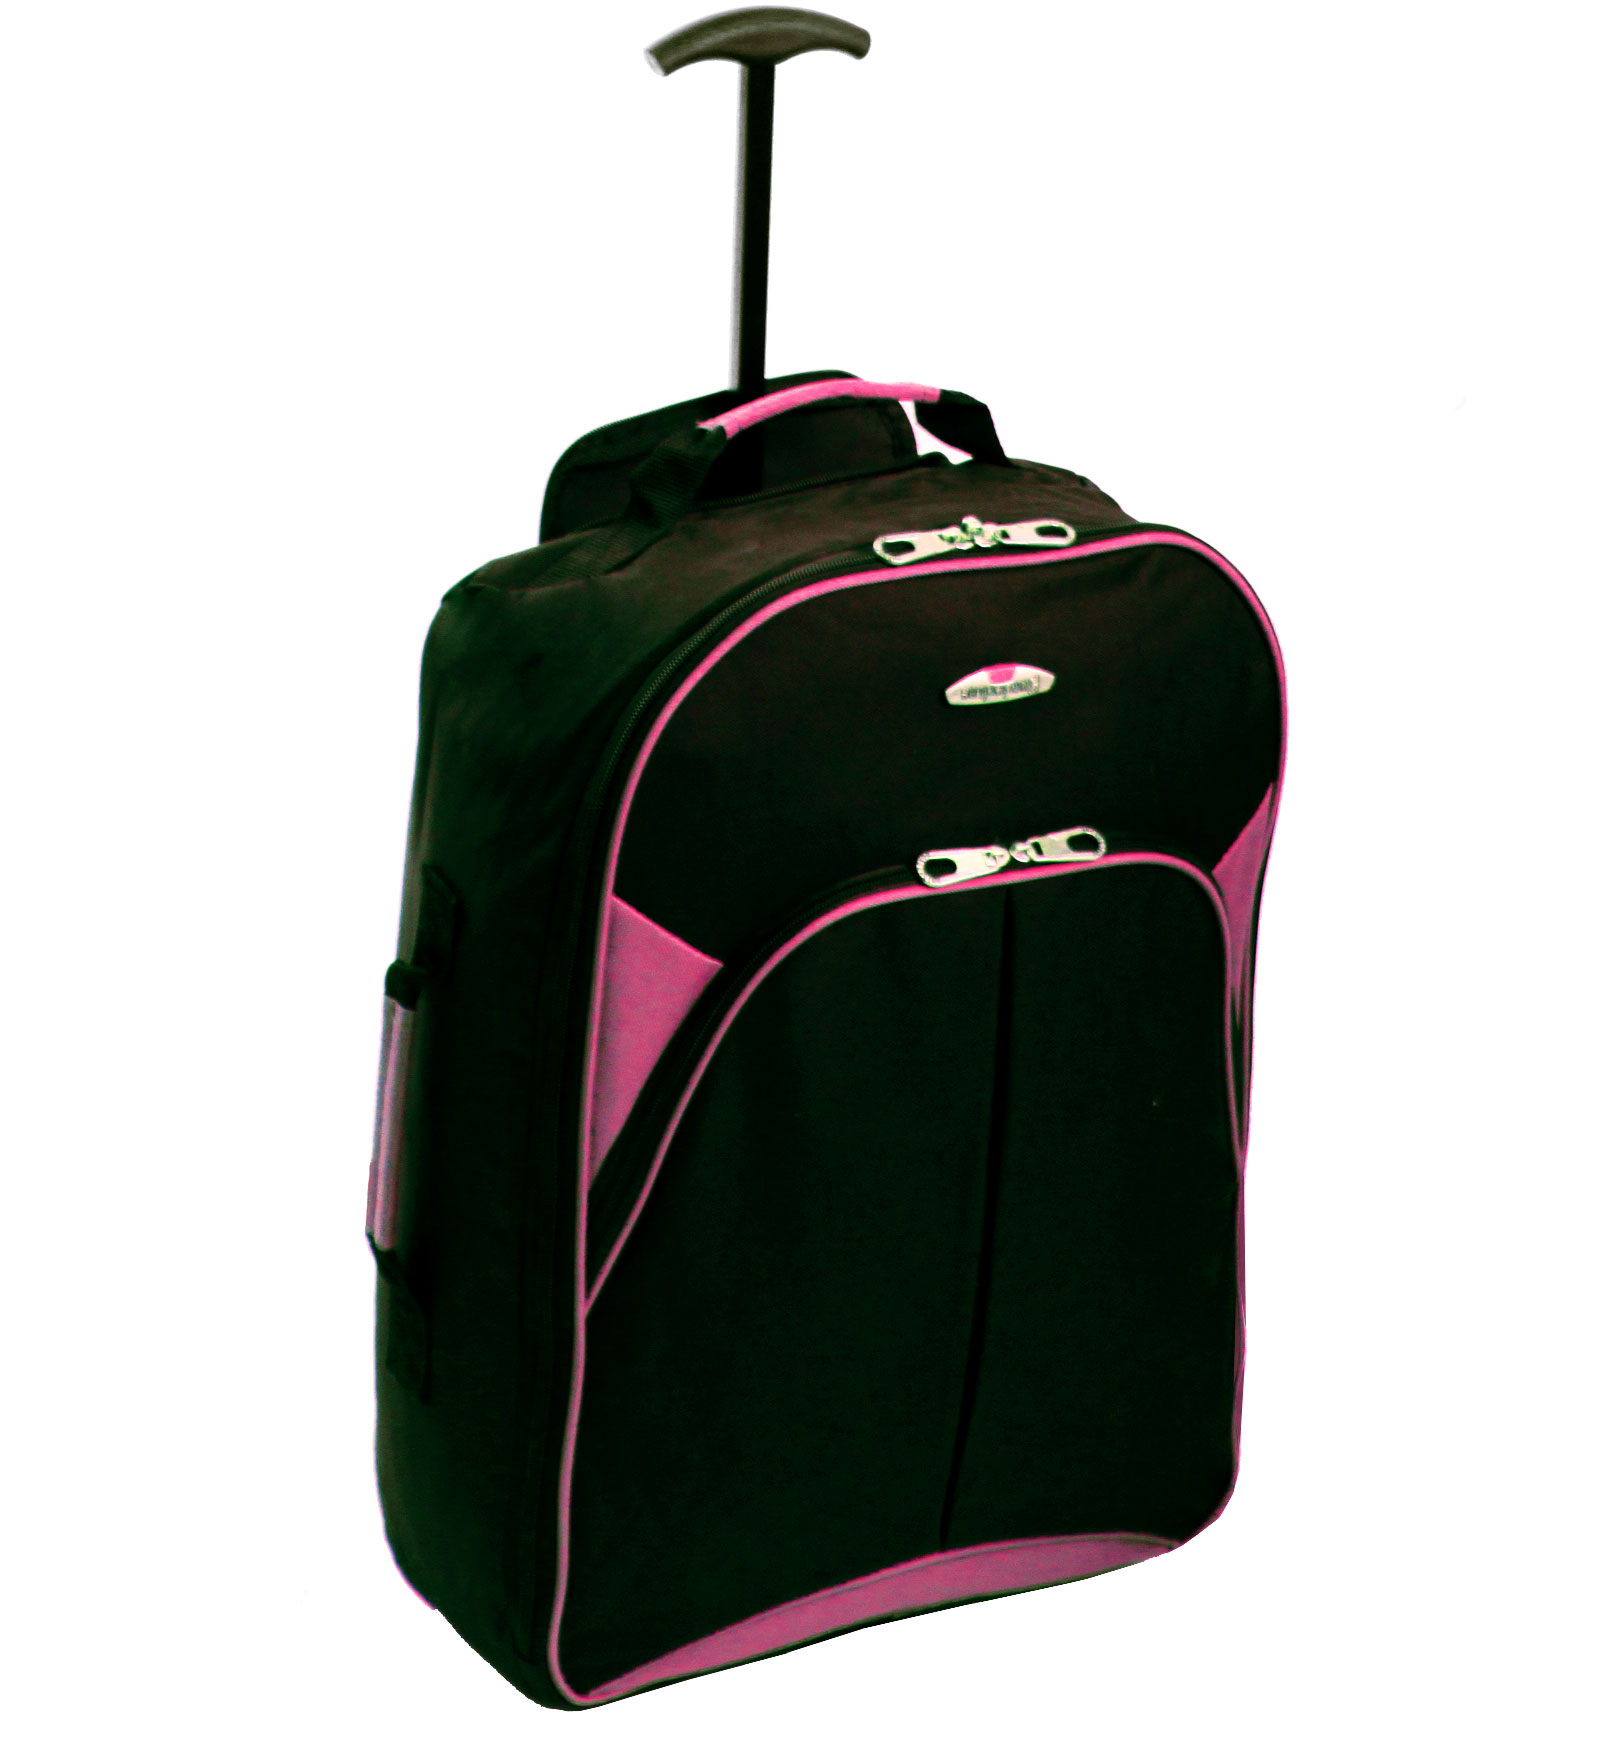 Ryanair cabine l ger roues trolley holdall bagages sac - Bagage cabine sac a dos ...